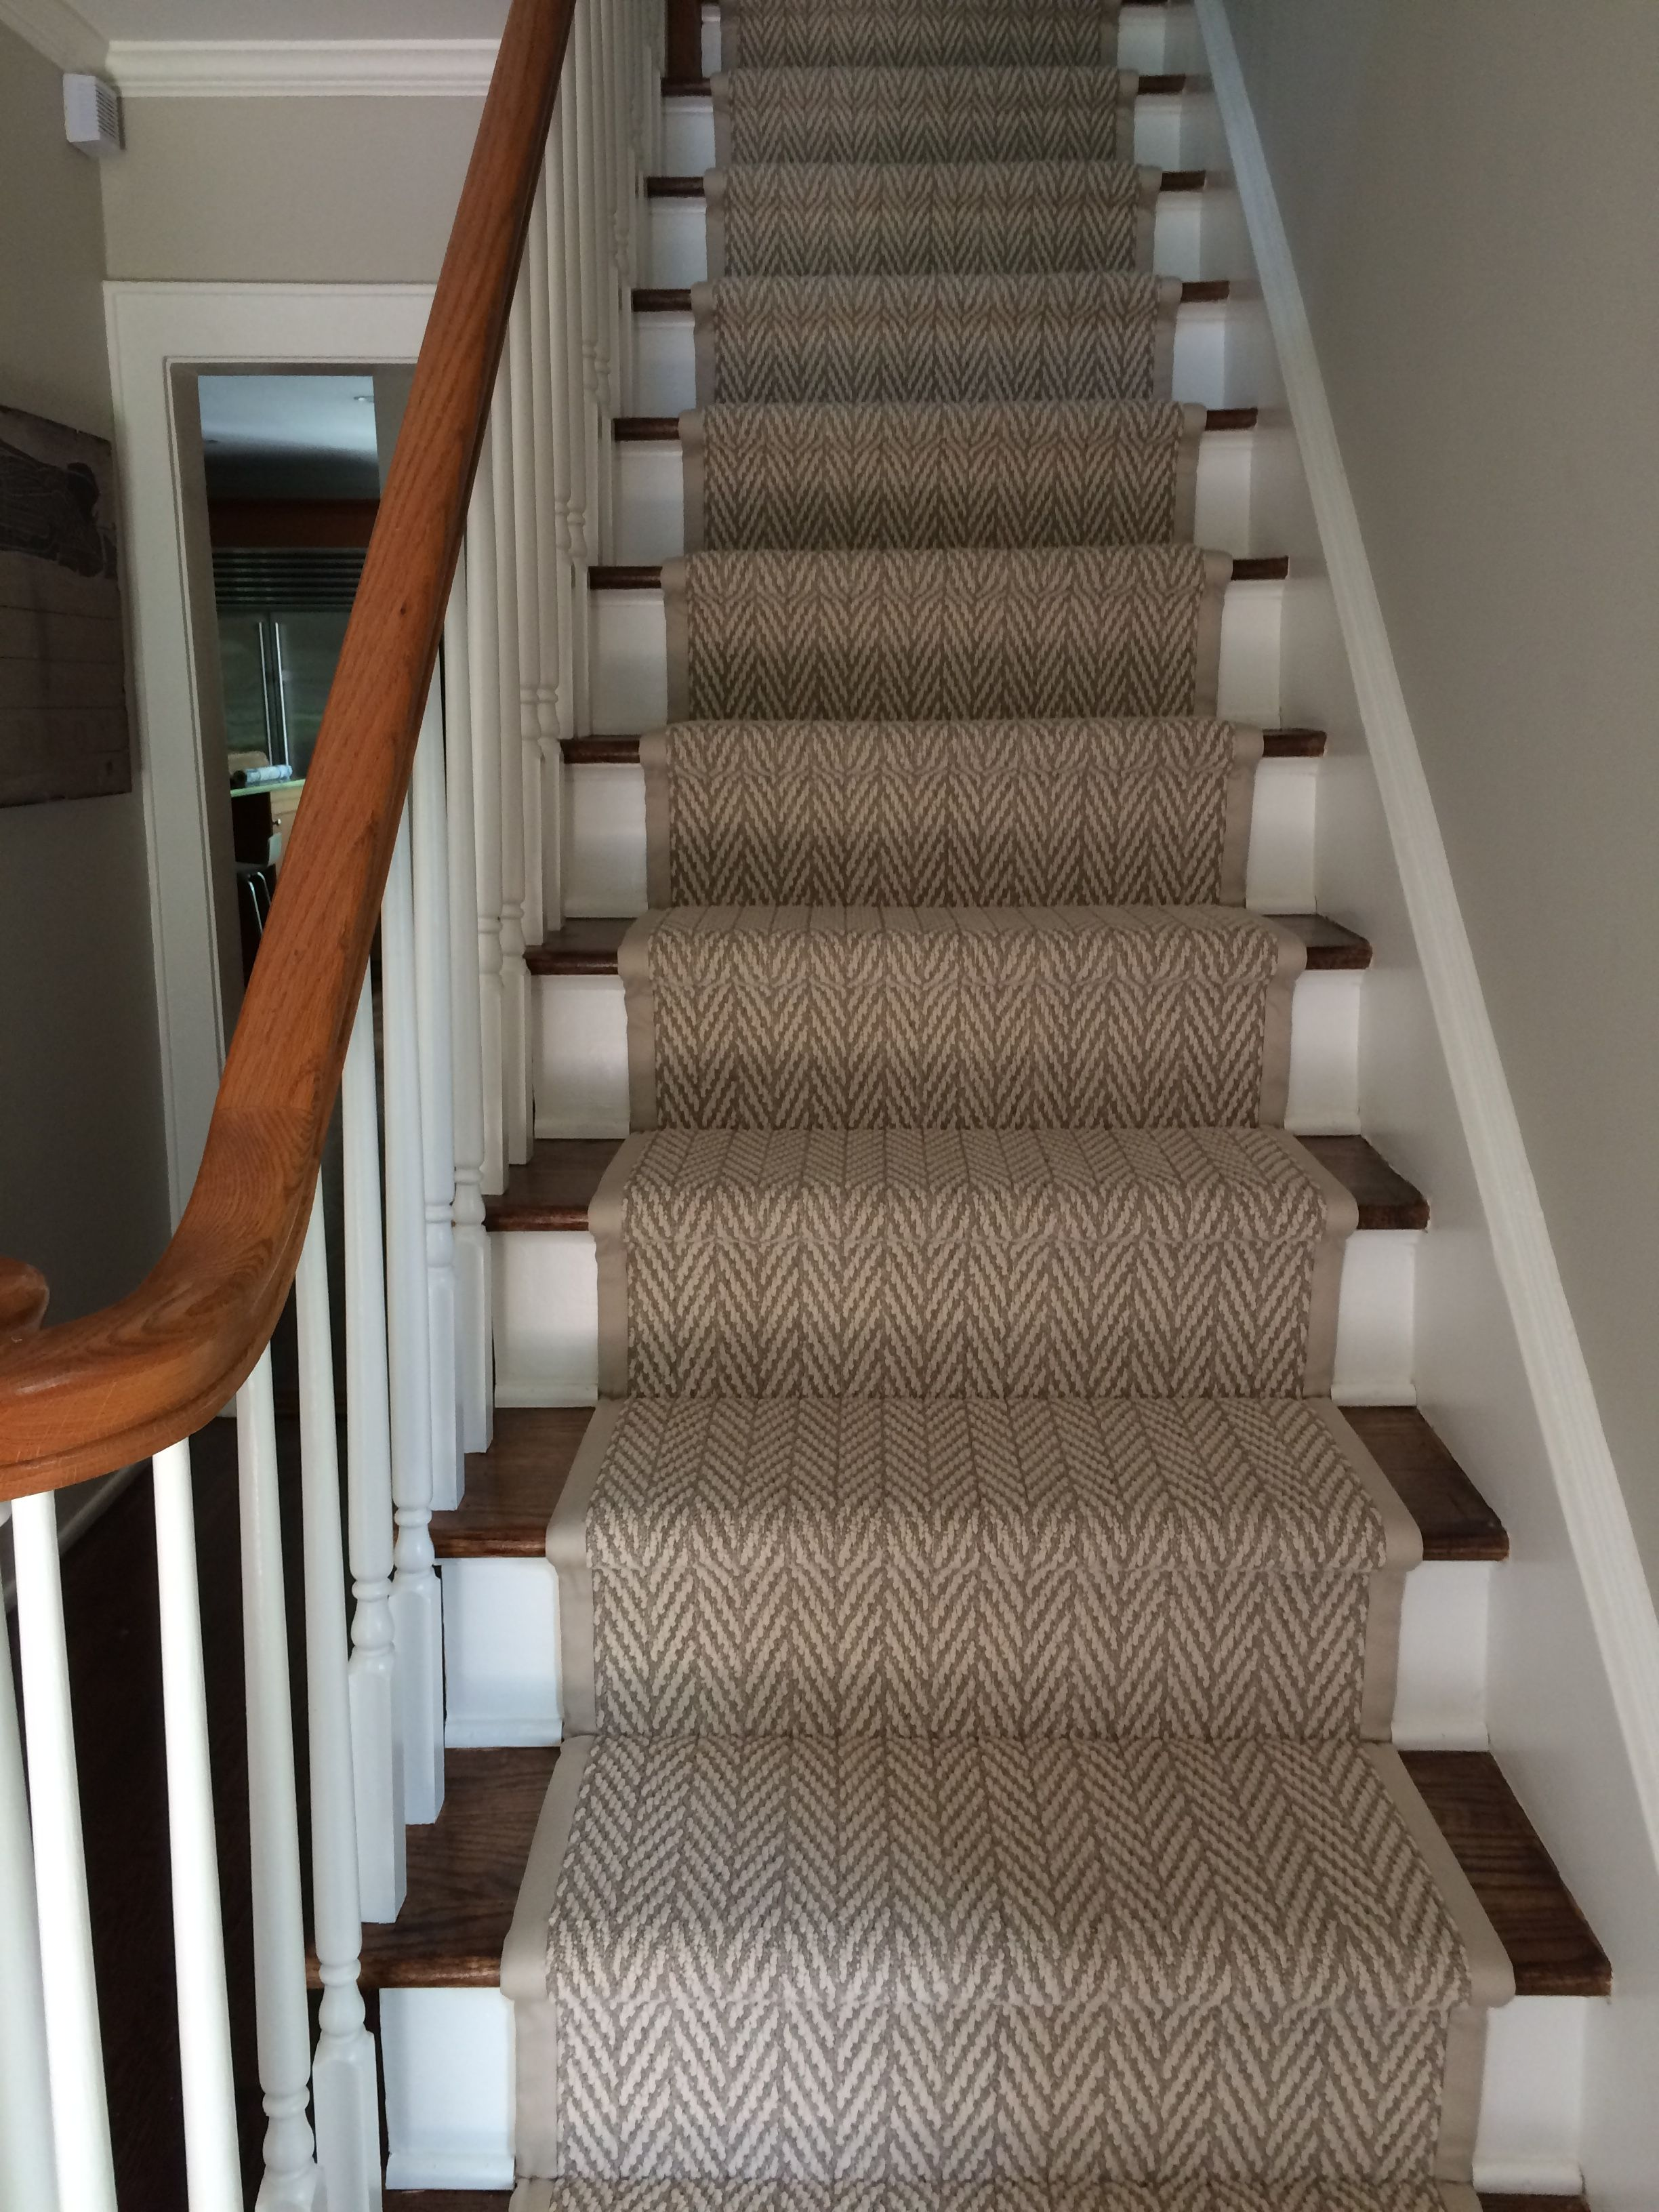 Tuftex Only Natural Herringbone Patterned Runner With Wide Binding